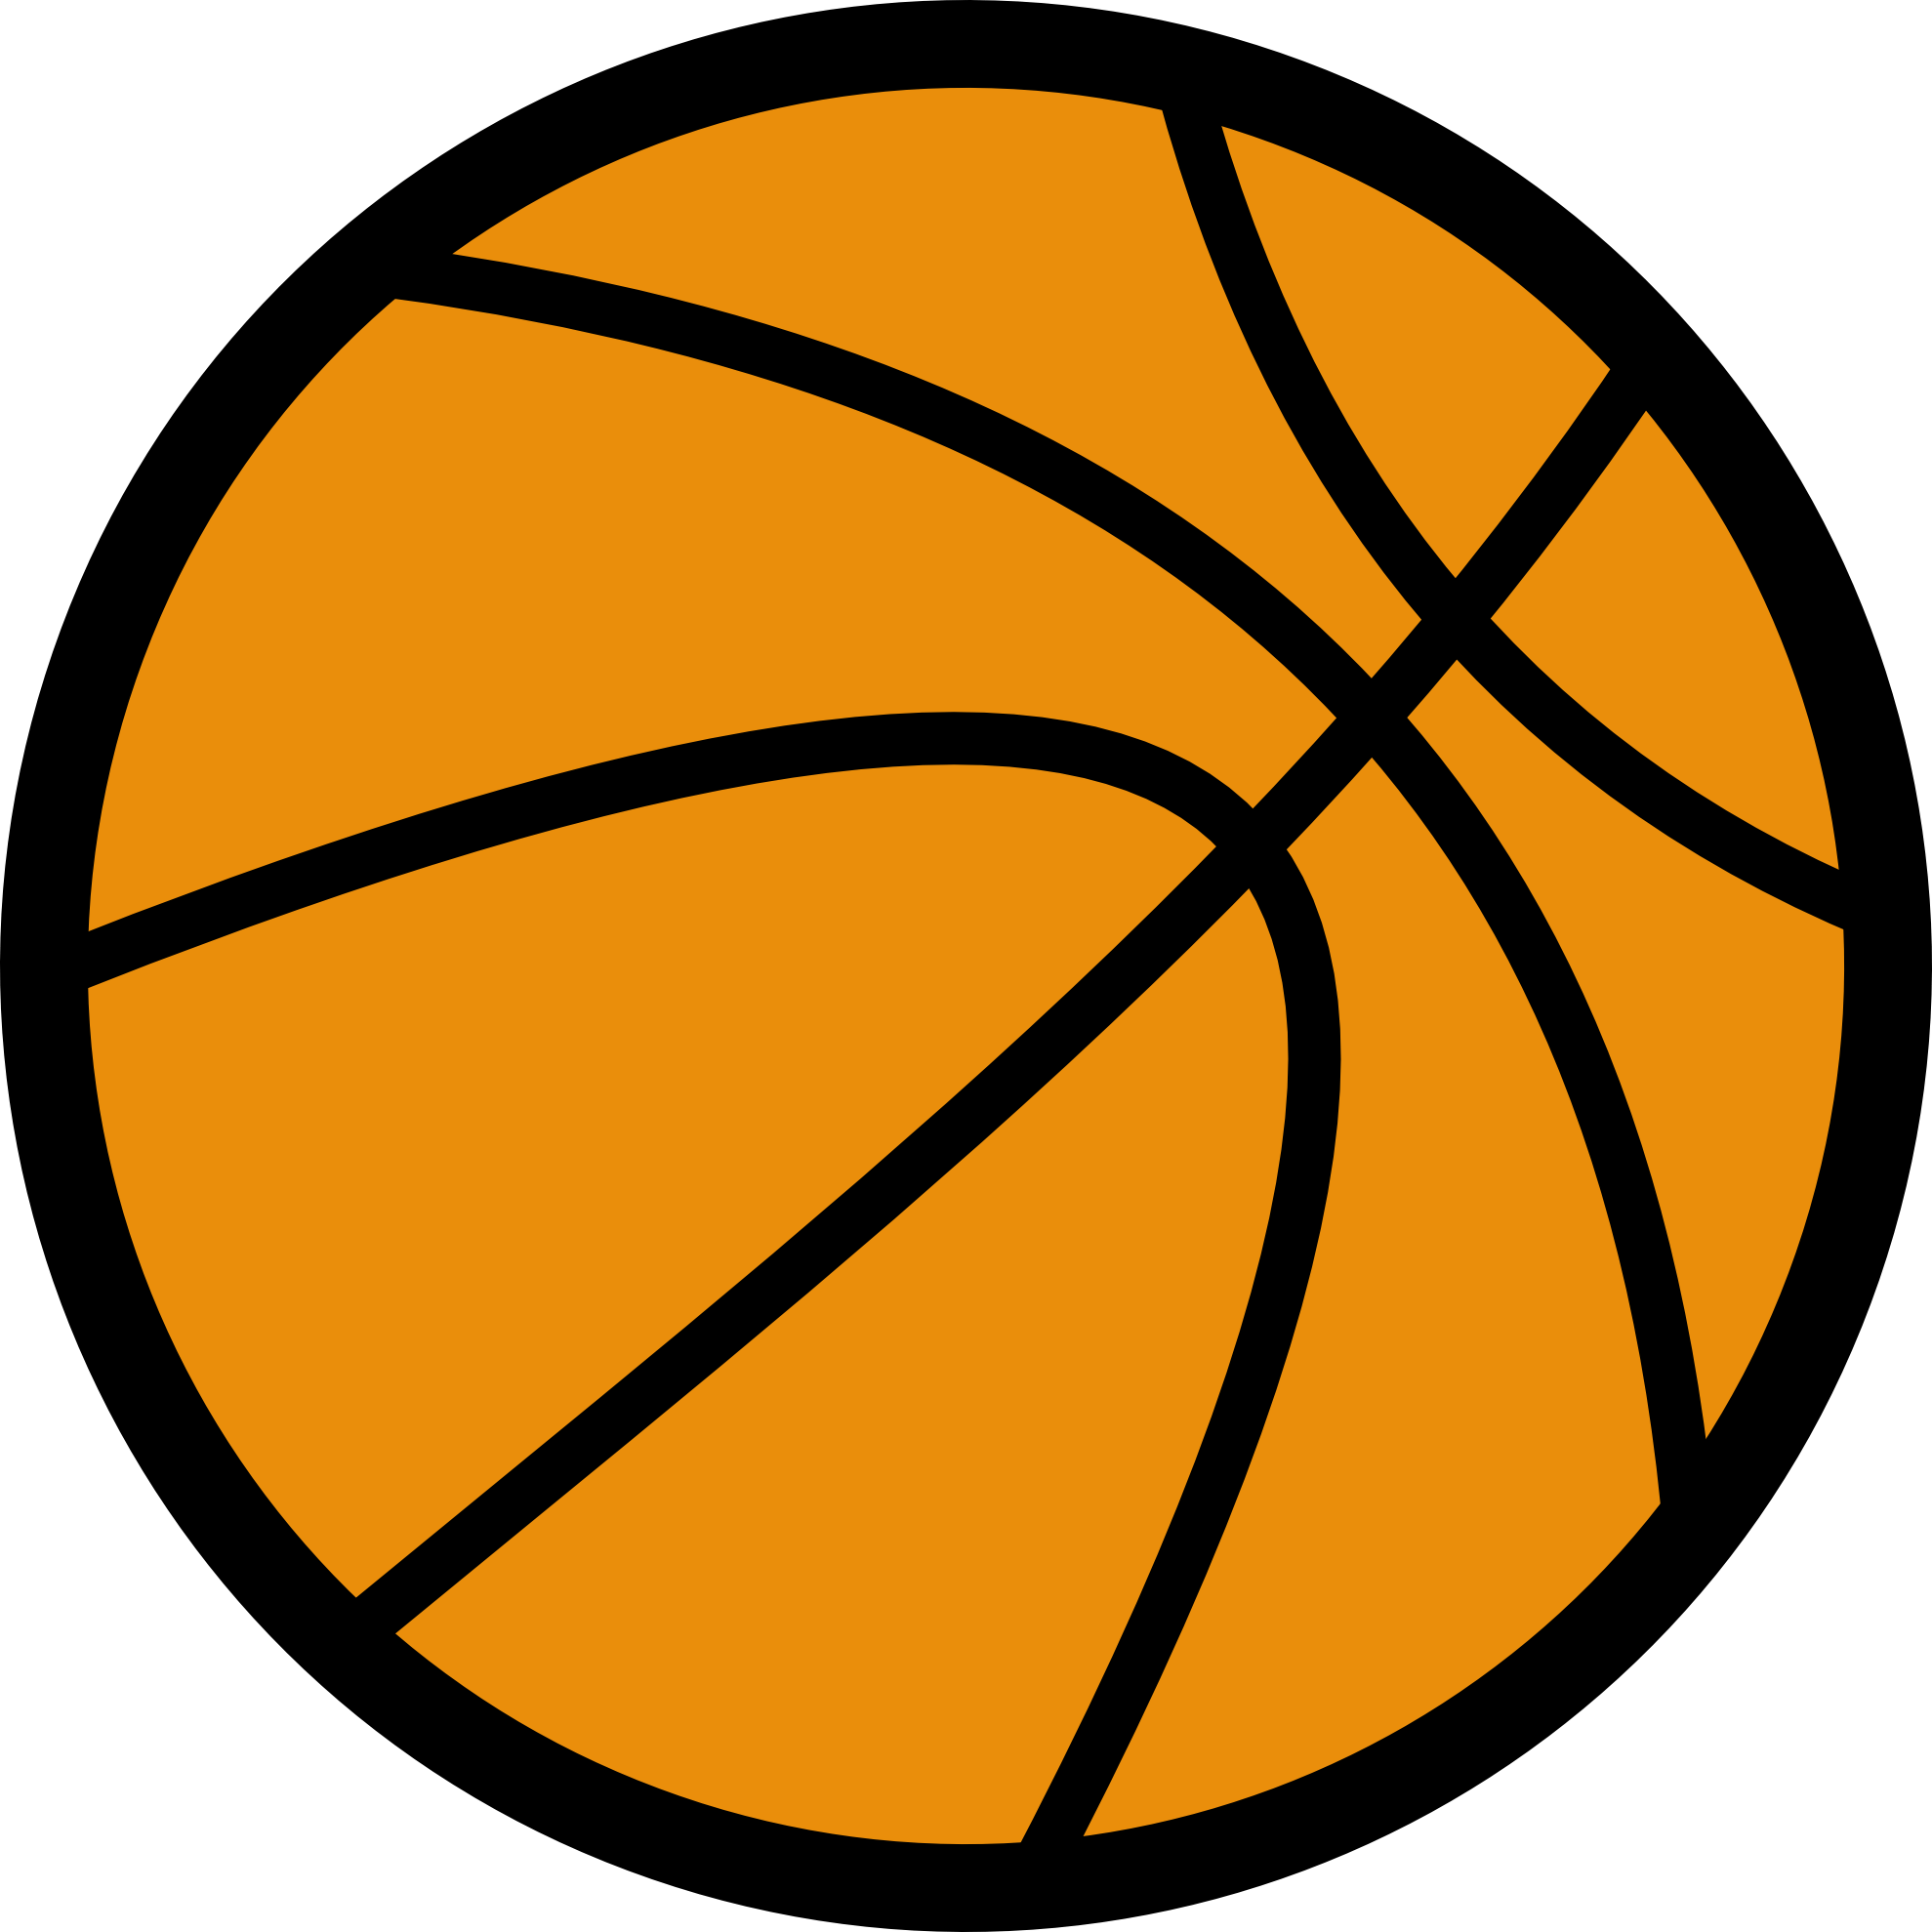 hight resolution of basketball clipart